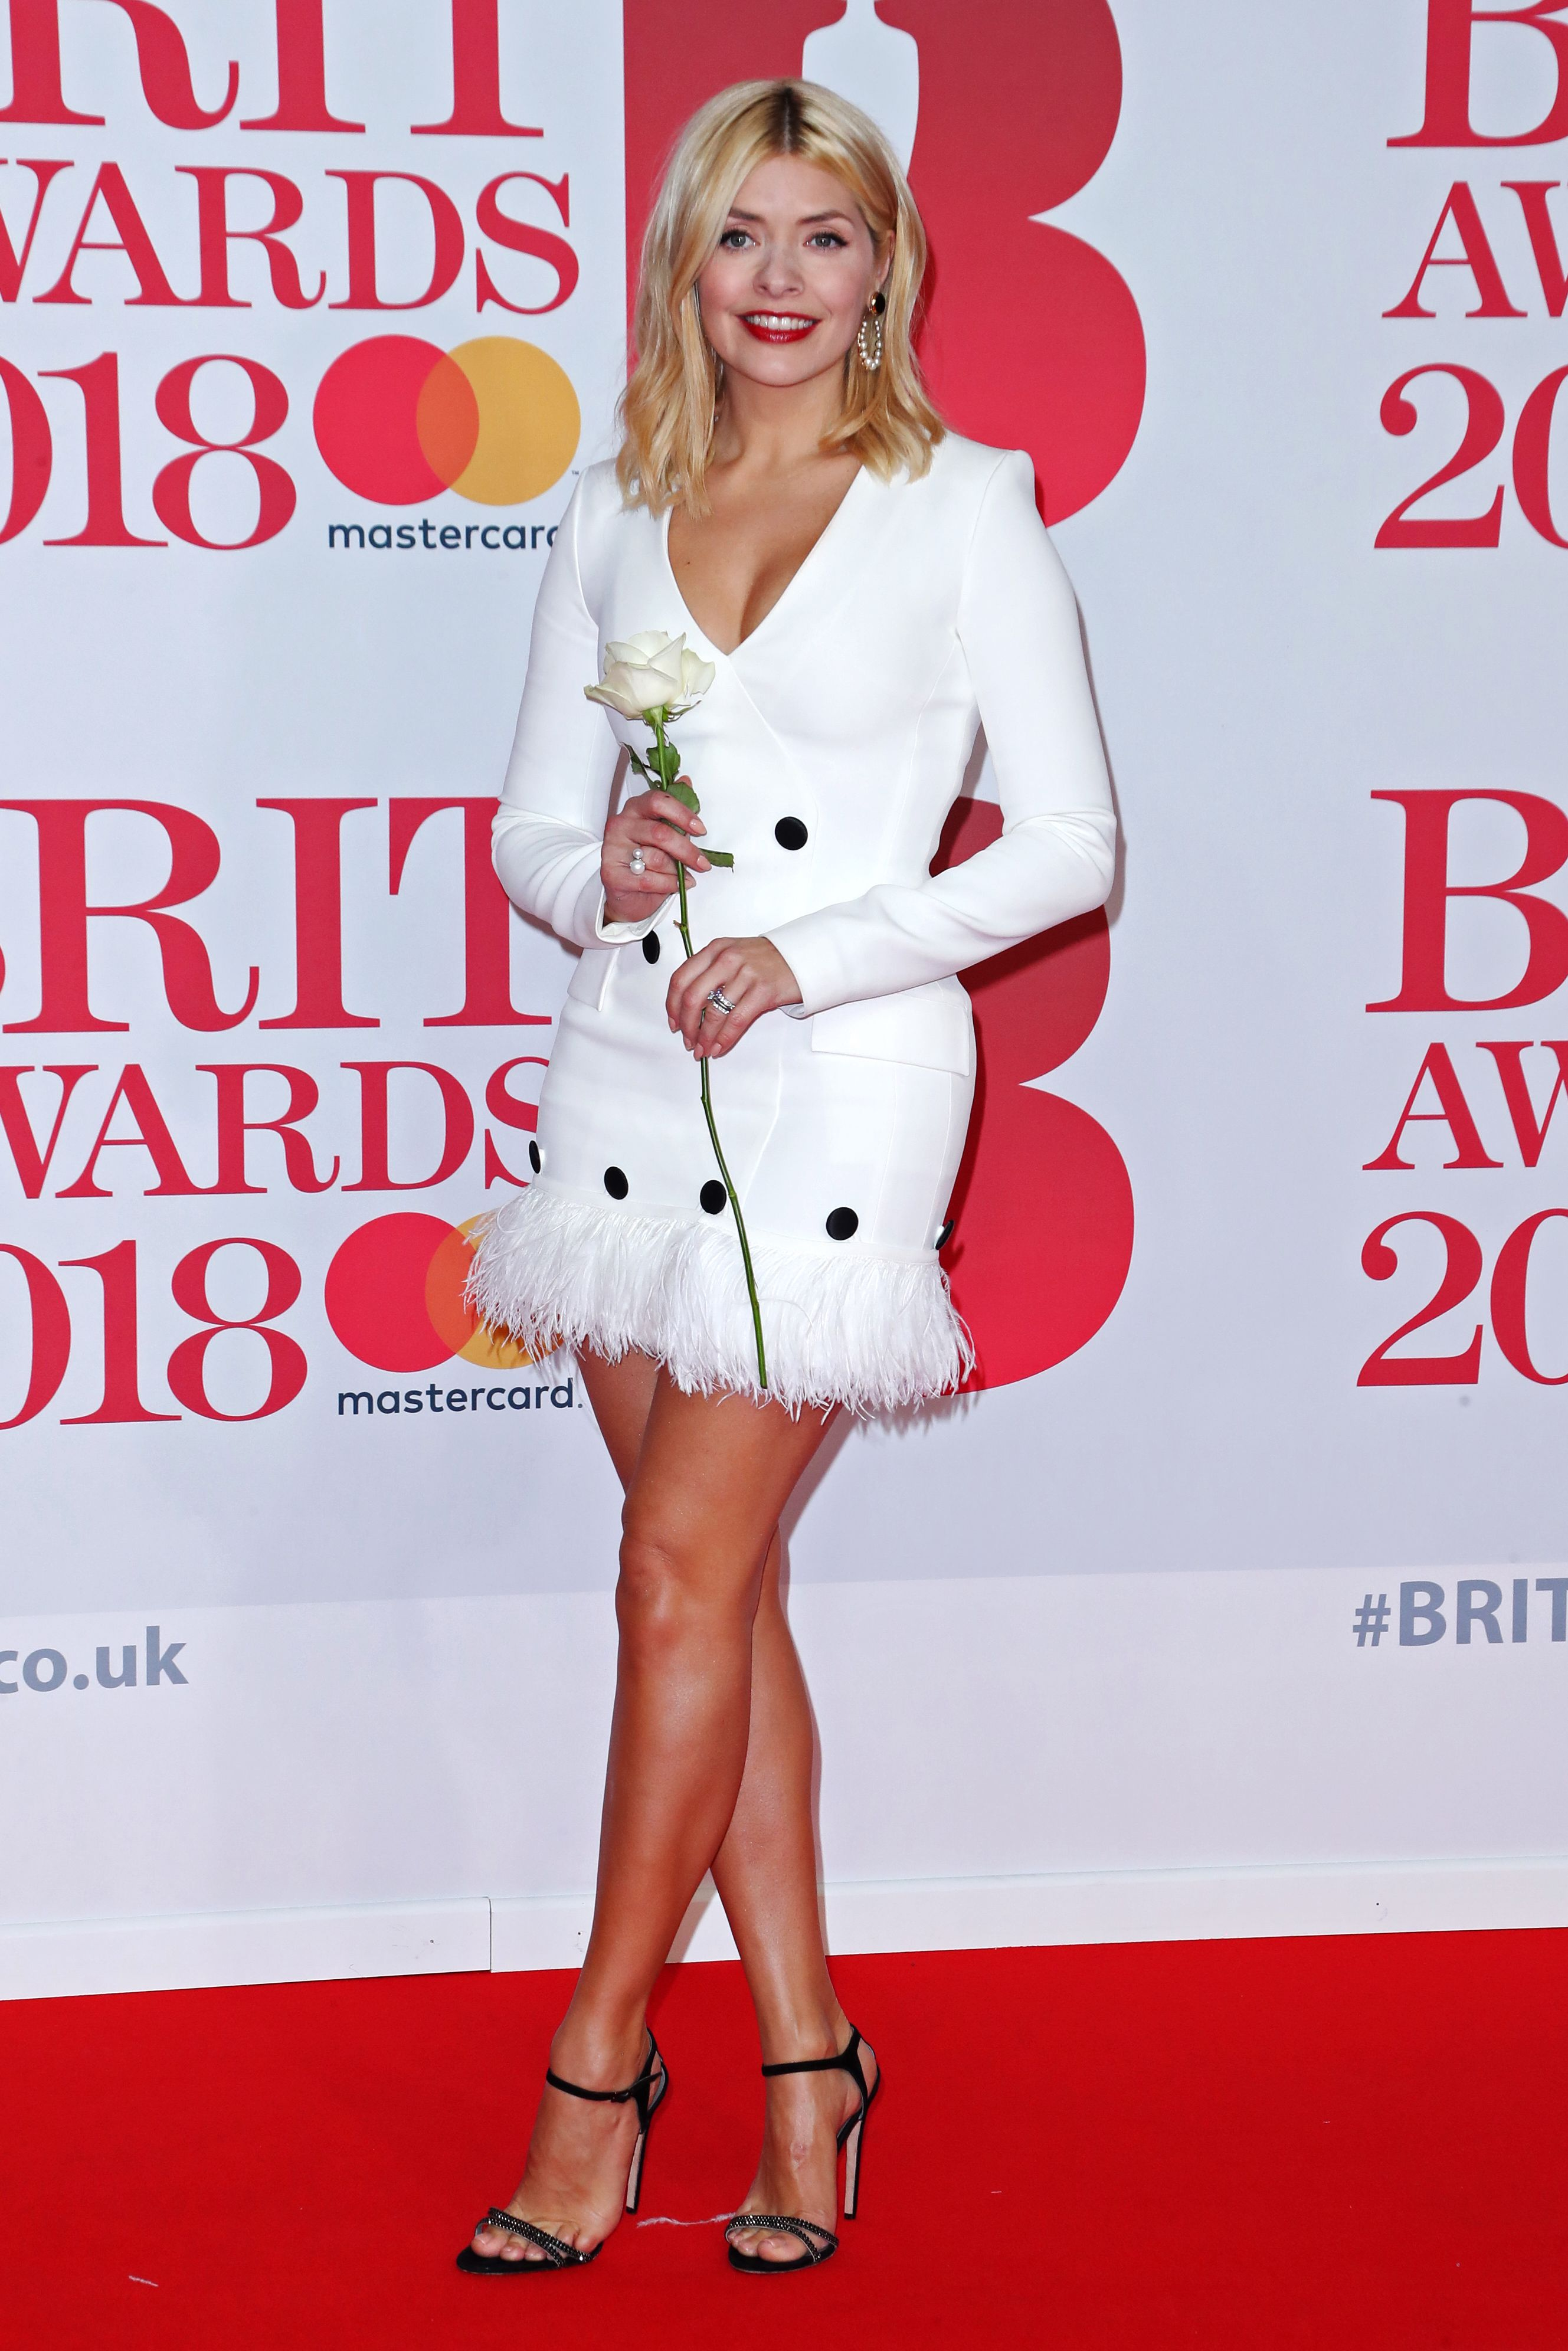 Looking As Glamorous Ever The Mum Of Three Absolutely Dazzled In A White Tuxedo Style Dress